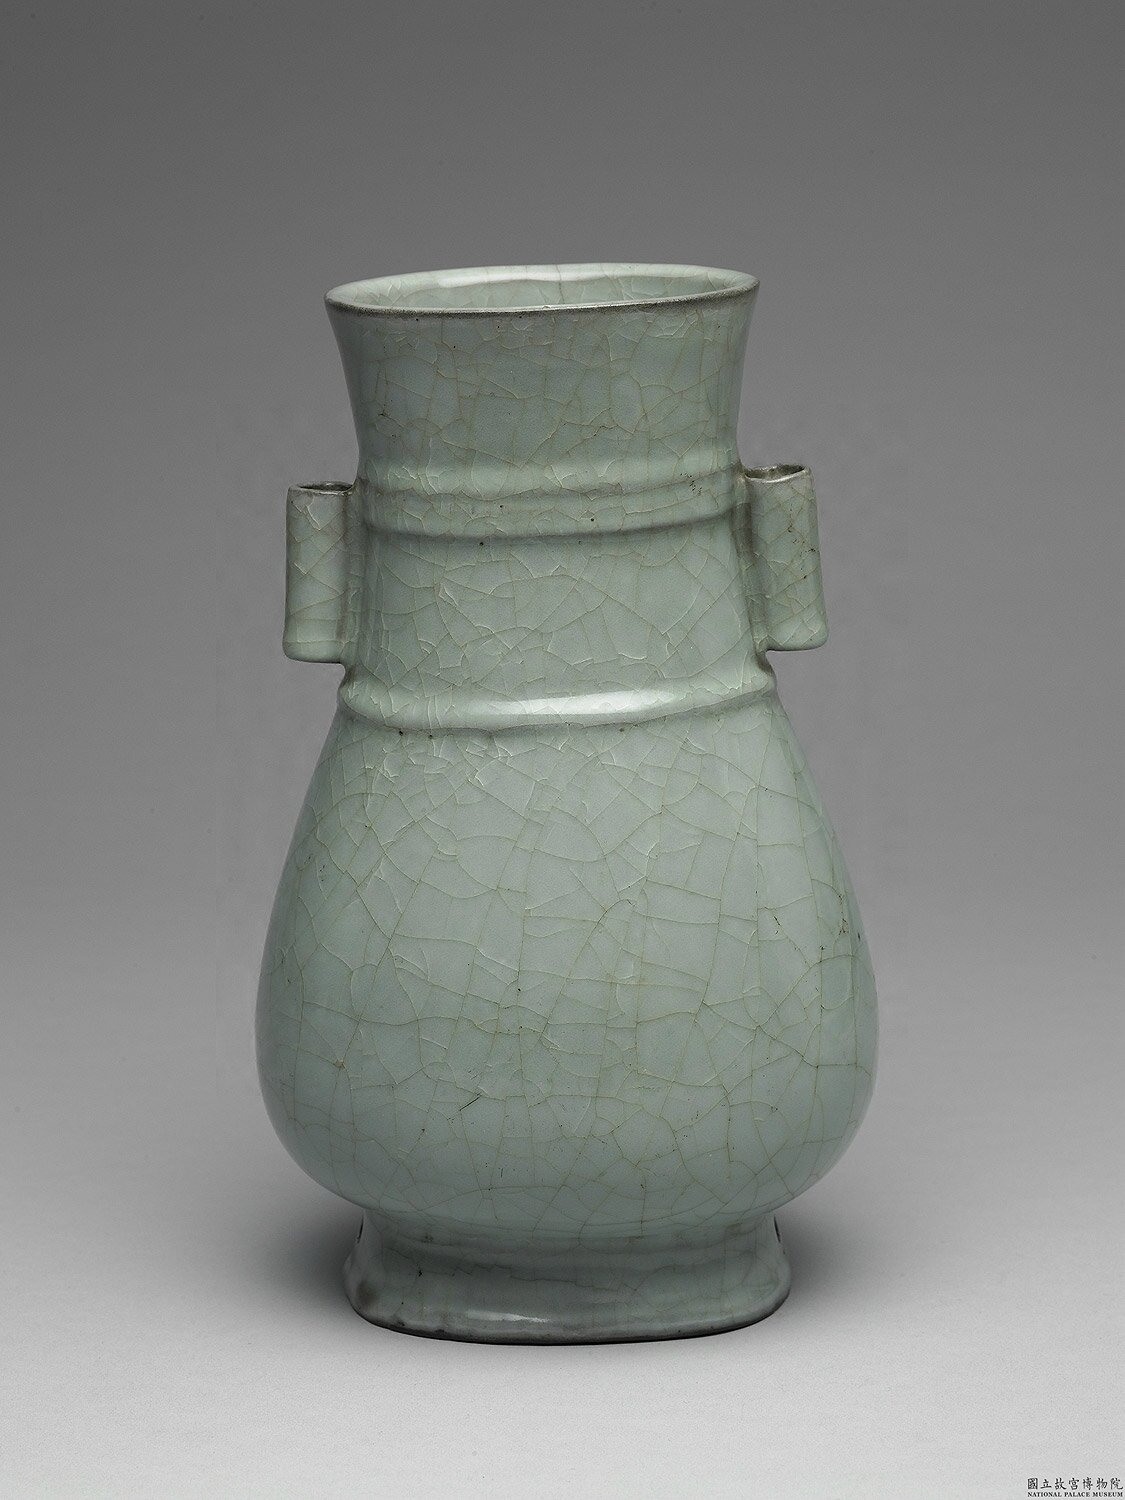 Hu vessel in celadon glaze, Guan ware, Southern Song Dynasty (12th-13th century)